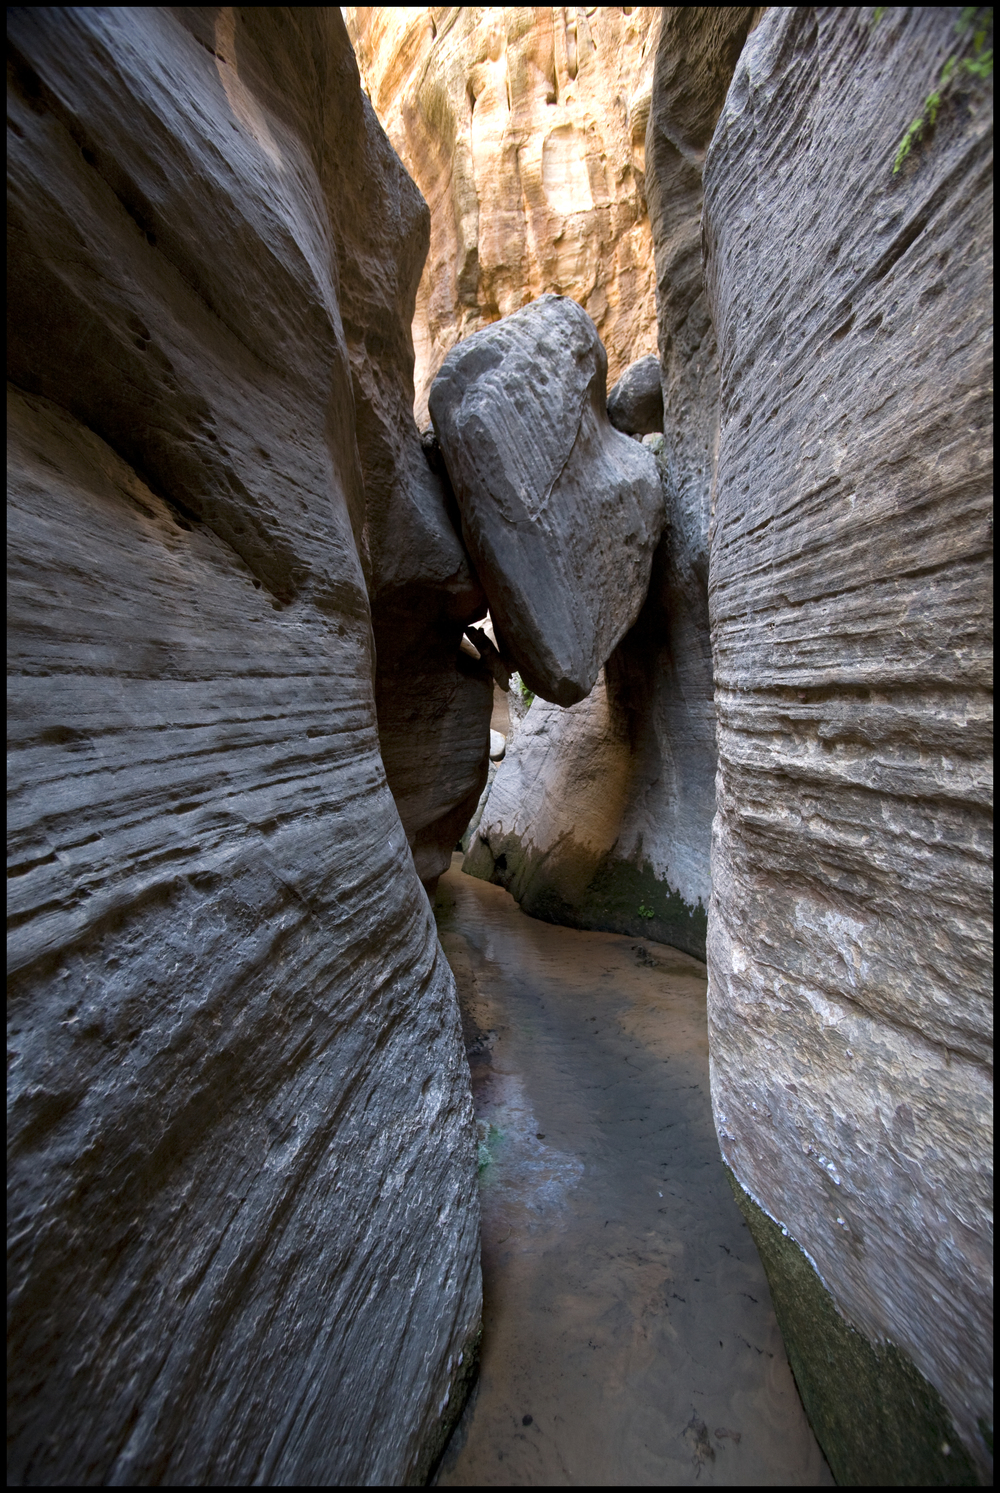 Fat Man's Misery, Zion National Park, UT